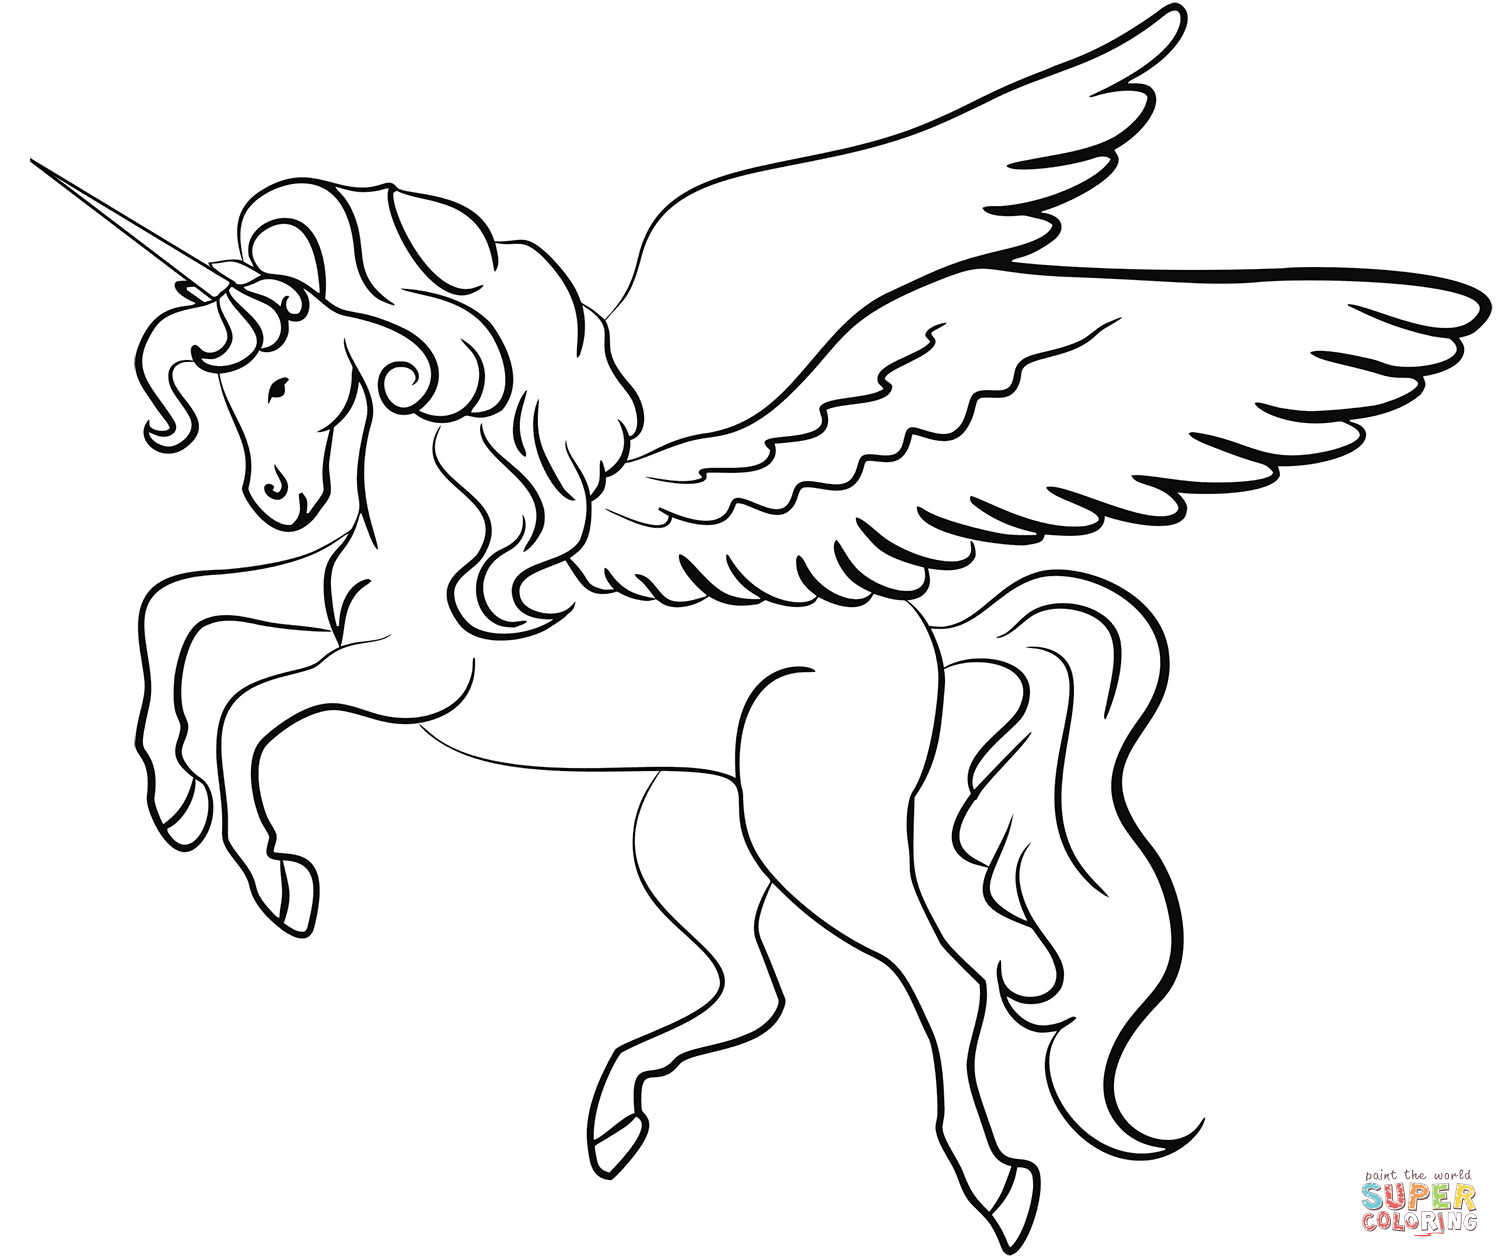 Pin på Unicorn coloring pages